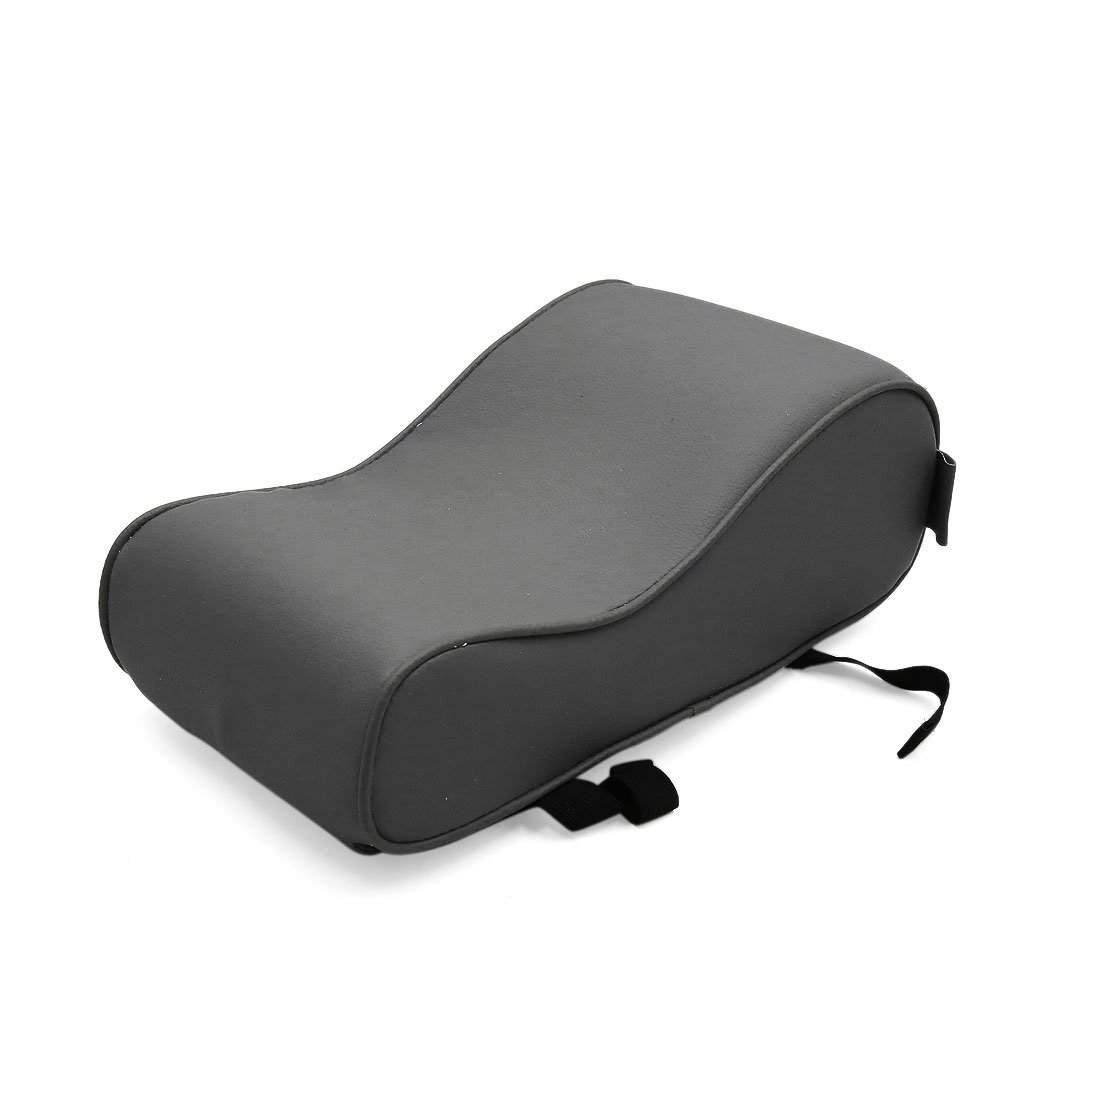 uxcell Gray Faux Leather Universal Multifunctional Armrest Pad Cushion for Car SUV by uxcell (Image #5)